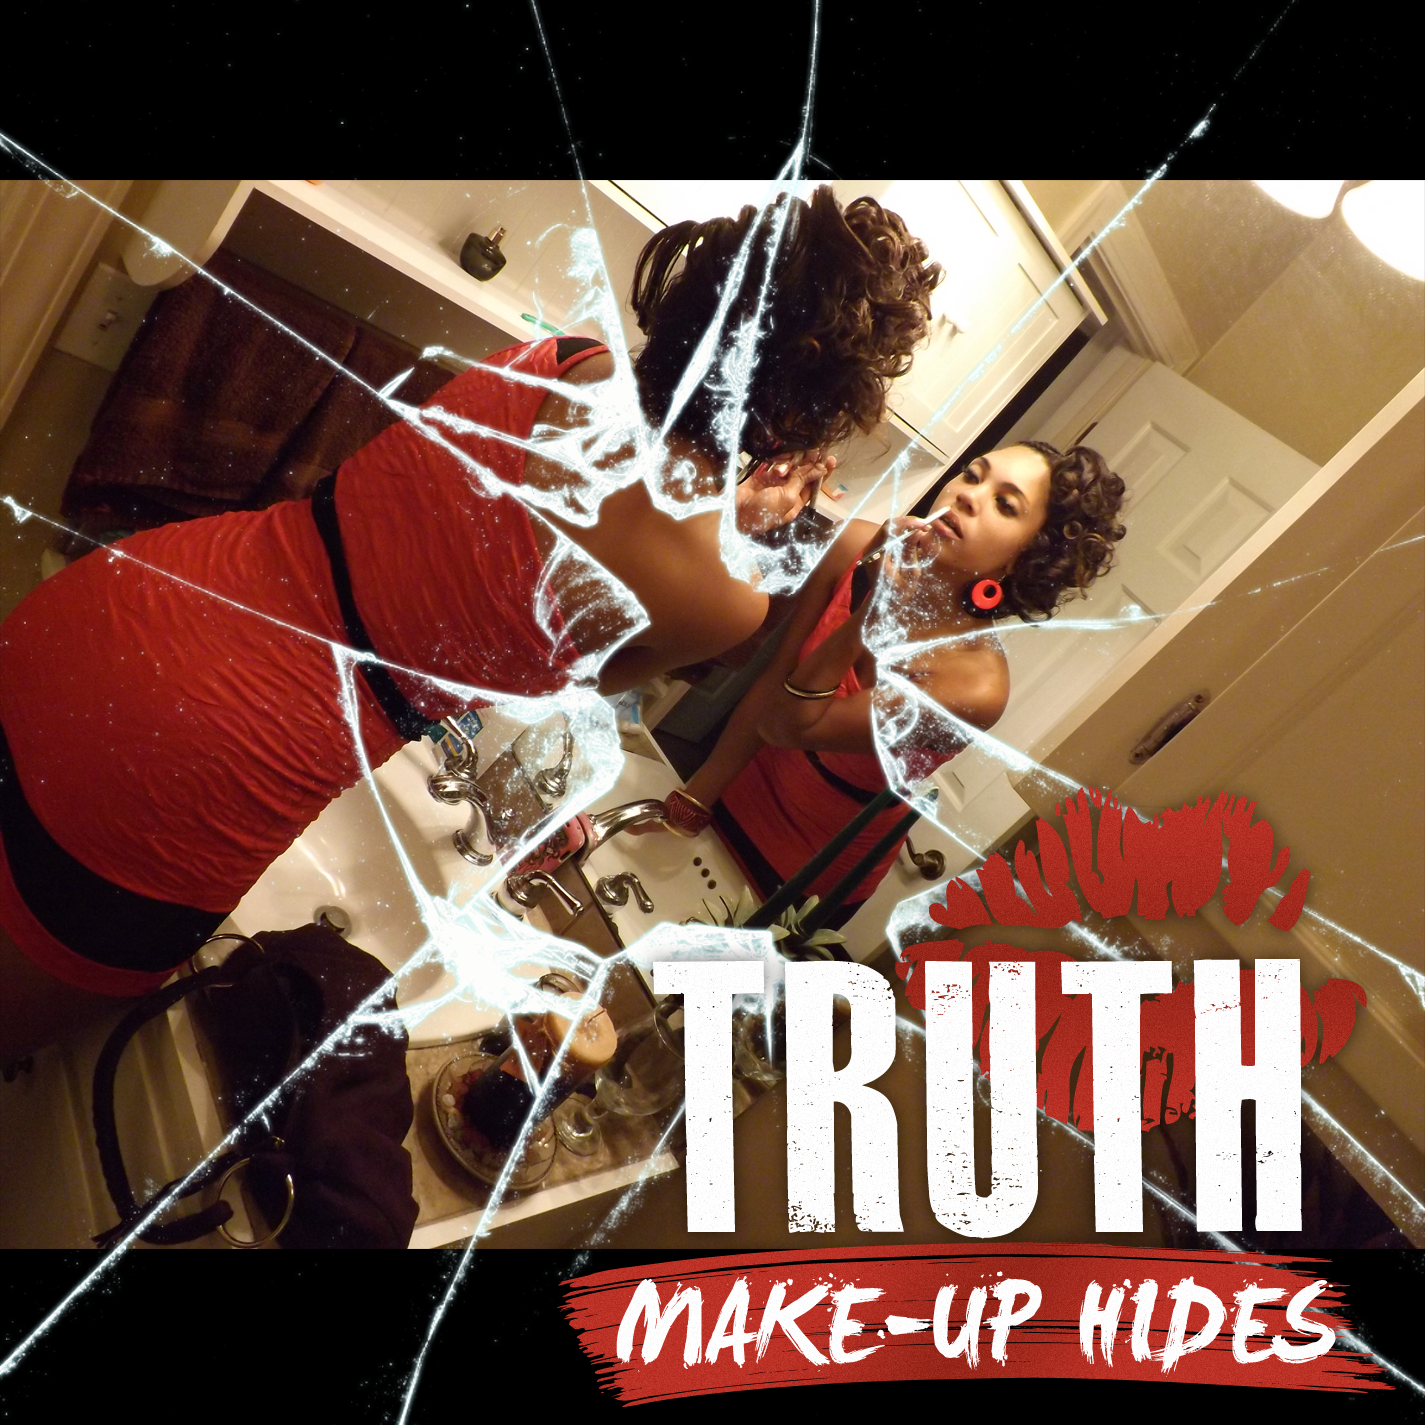 Make-Up Hides Cover Art